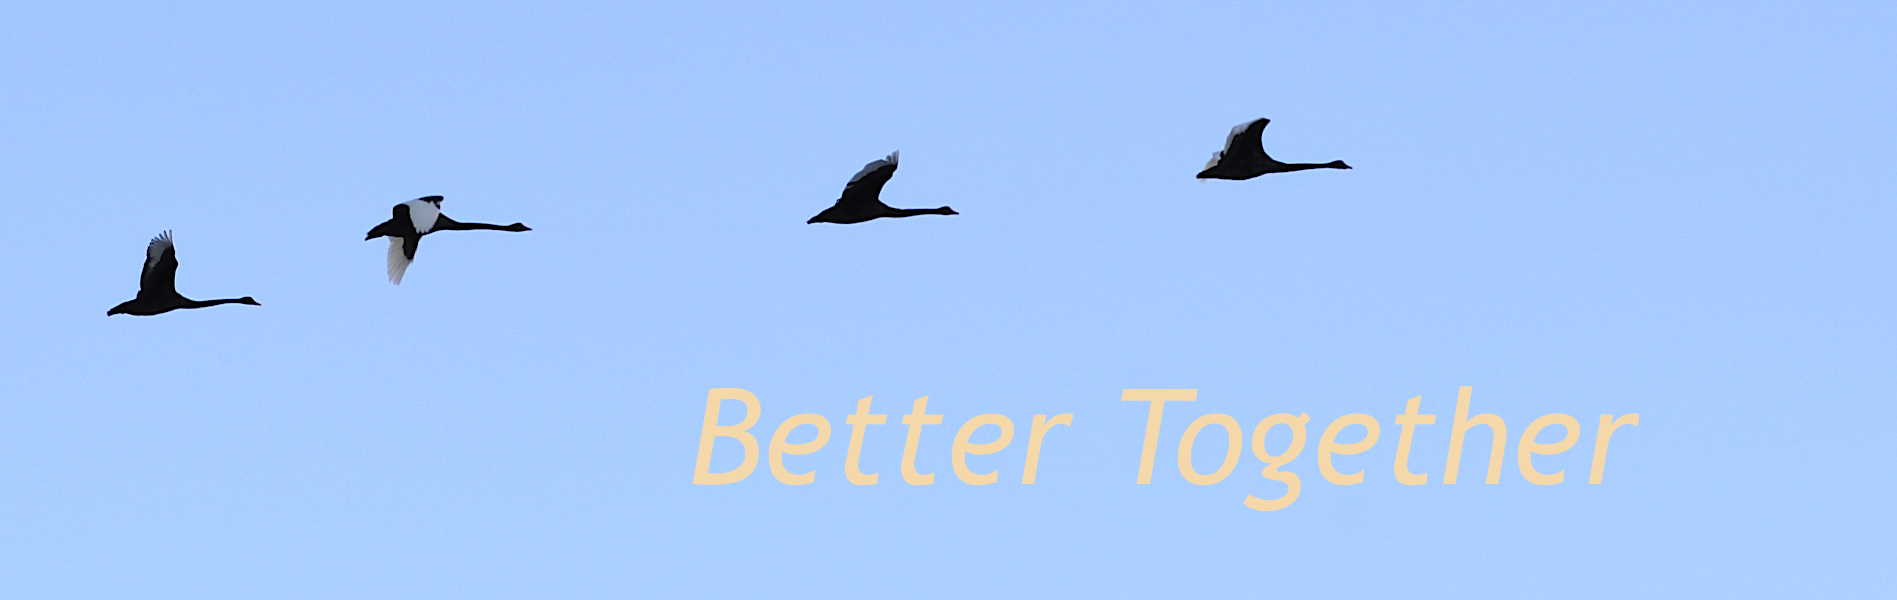 Better Together - groups for introverts